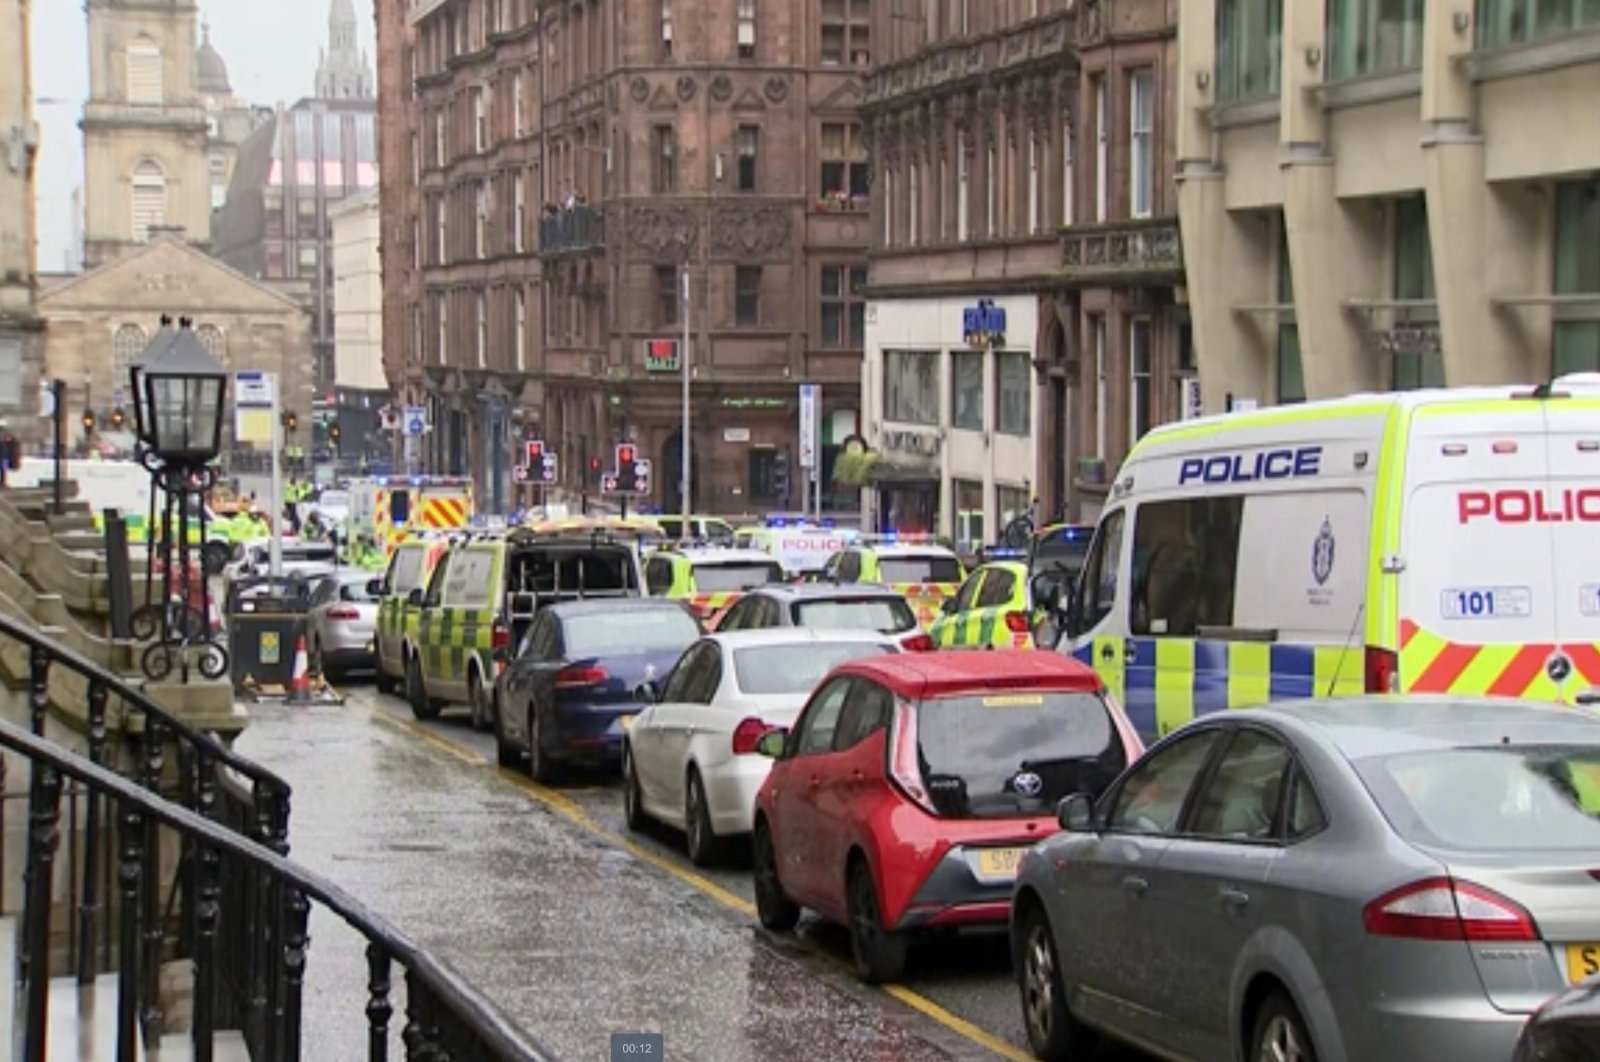 Emergency services attend the scene of incident, Glasgow, Scotland, June 26, 2020. (AP Photo)